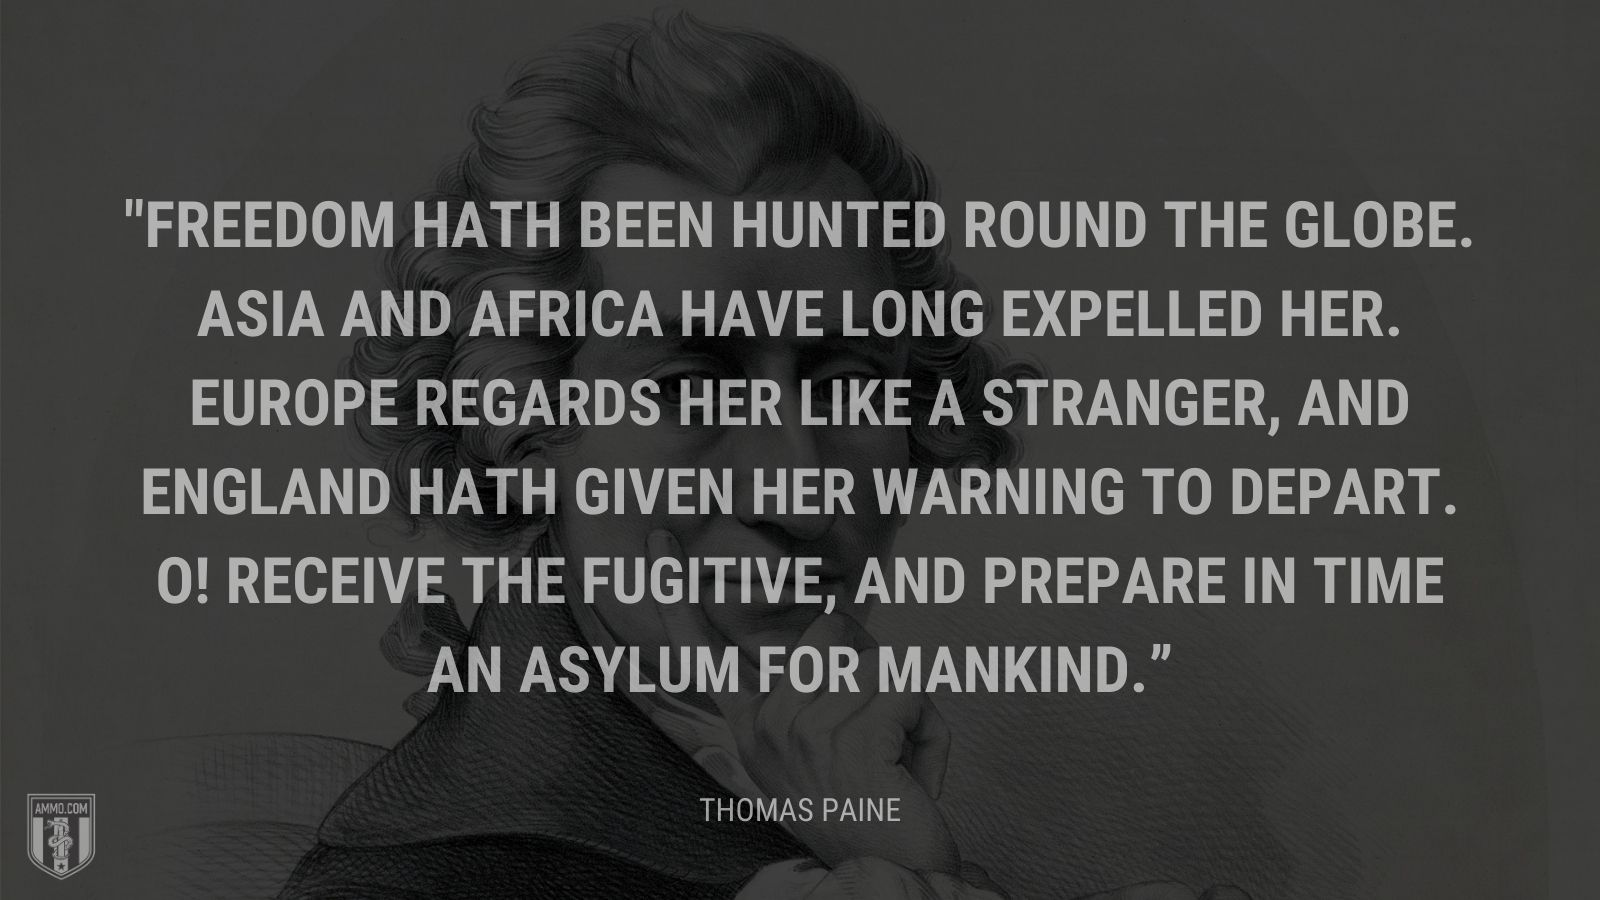 """Freedom hath been hunted round the globe. Asia and Africa have long expelled her. Europe regards her like a stranger, and England hath given her warning to depart. O! Receive the fugitive, and prepare in time an asylum for mankind."" - Thomas Paine"